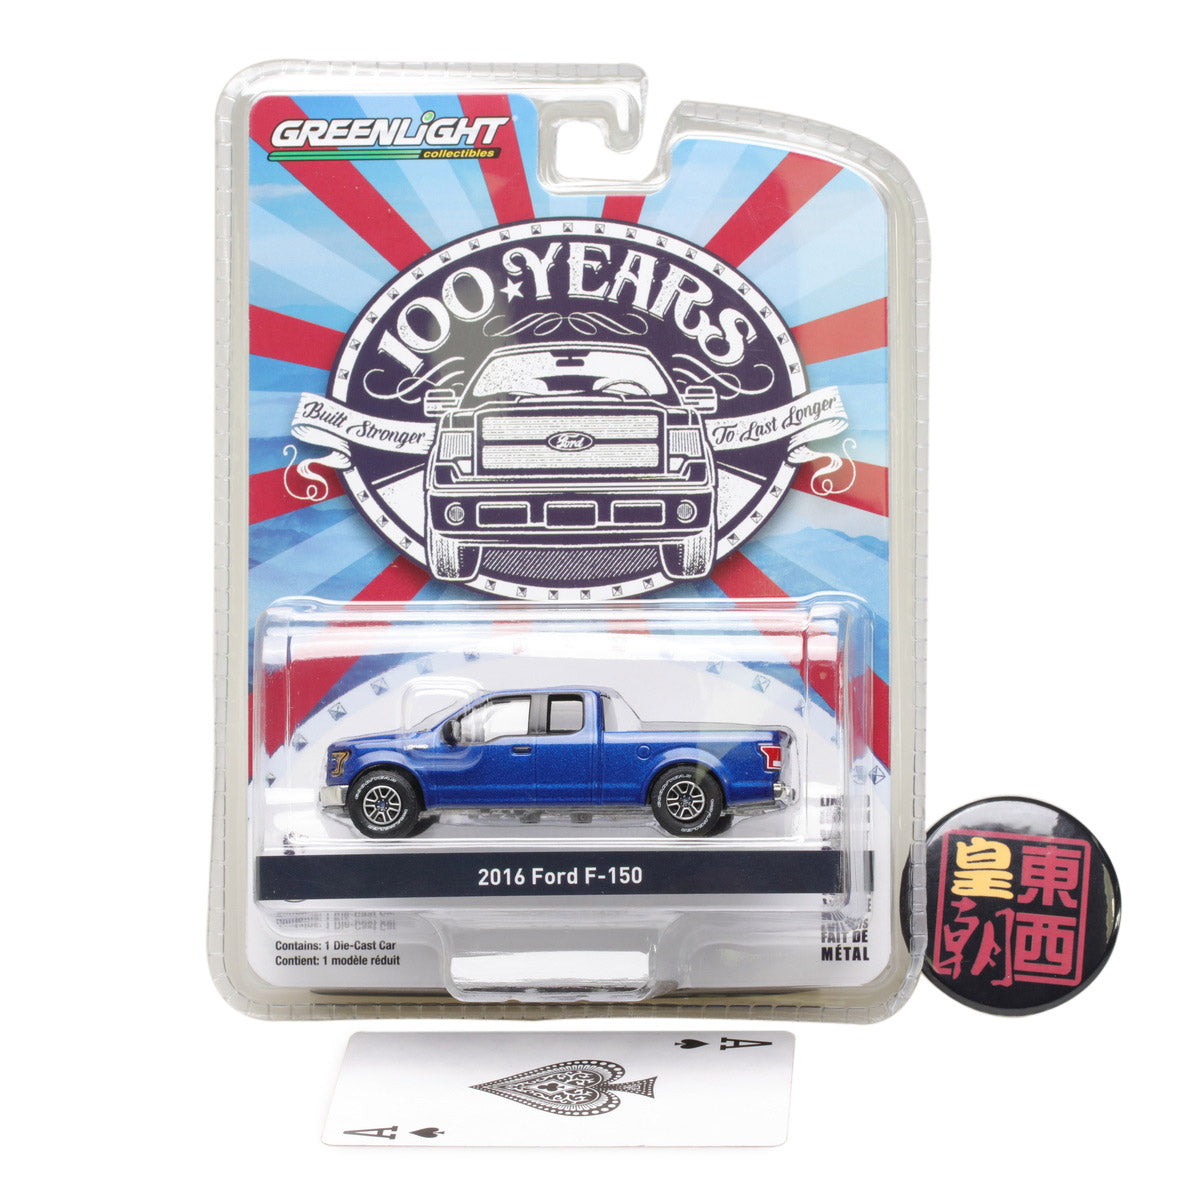 GreenLight 1:64 Anniversary Collection Series 5 - 2016 Ford F-150 Ford Trucks 100 Years Diecast Model Car 27920-E